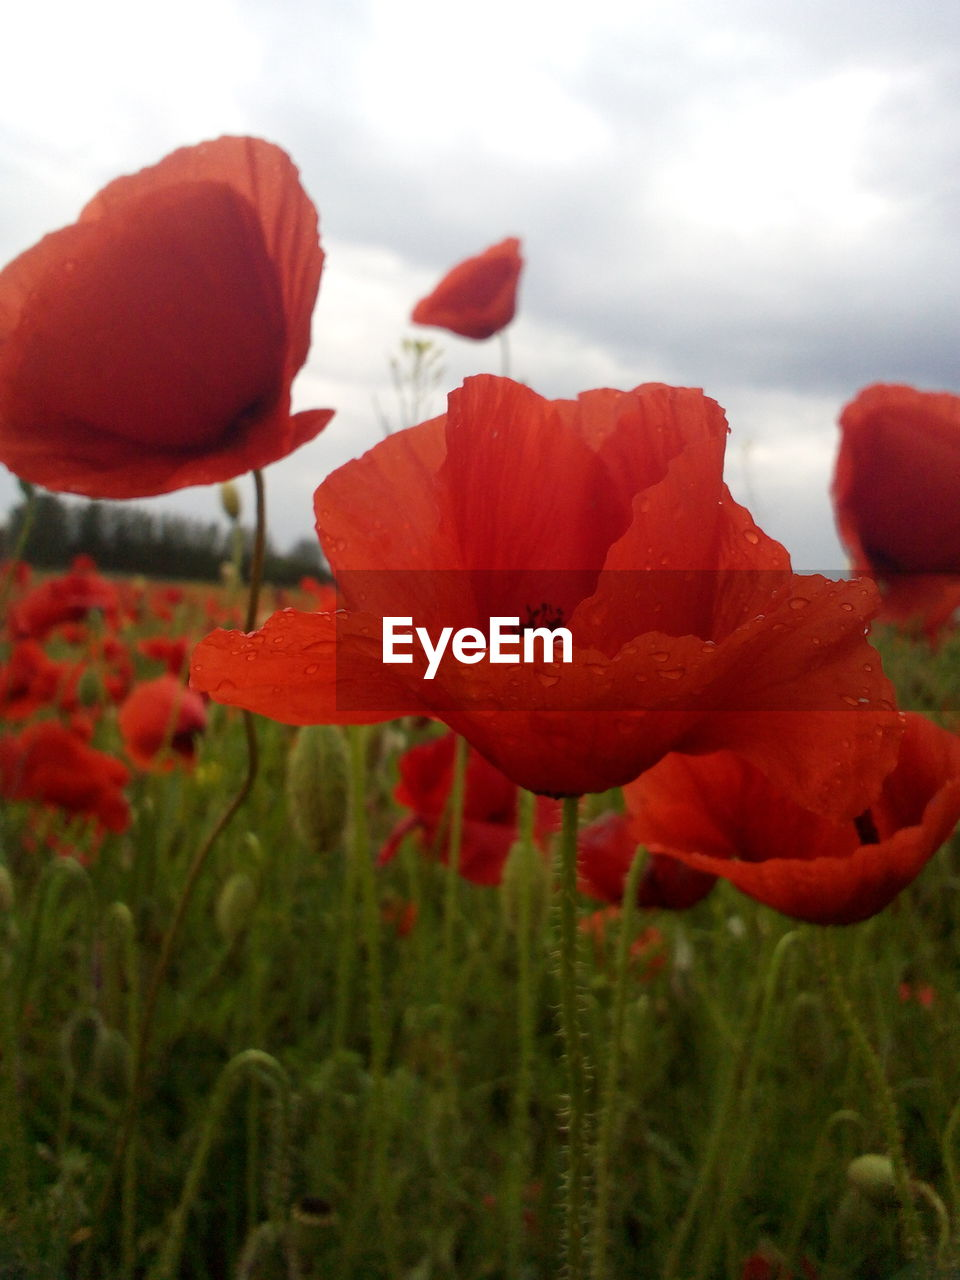 flower, nature, beauty in nature, petal, growth, fragility, red, freshness, plant, poppy, flower head, no people, field, outdoors, close-up, blooming, day, sky